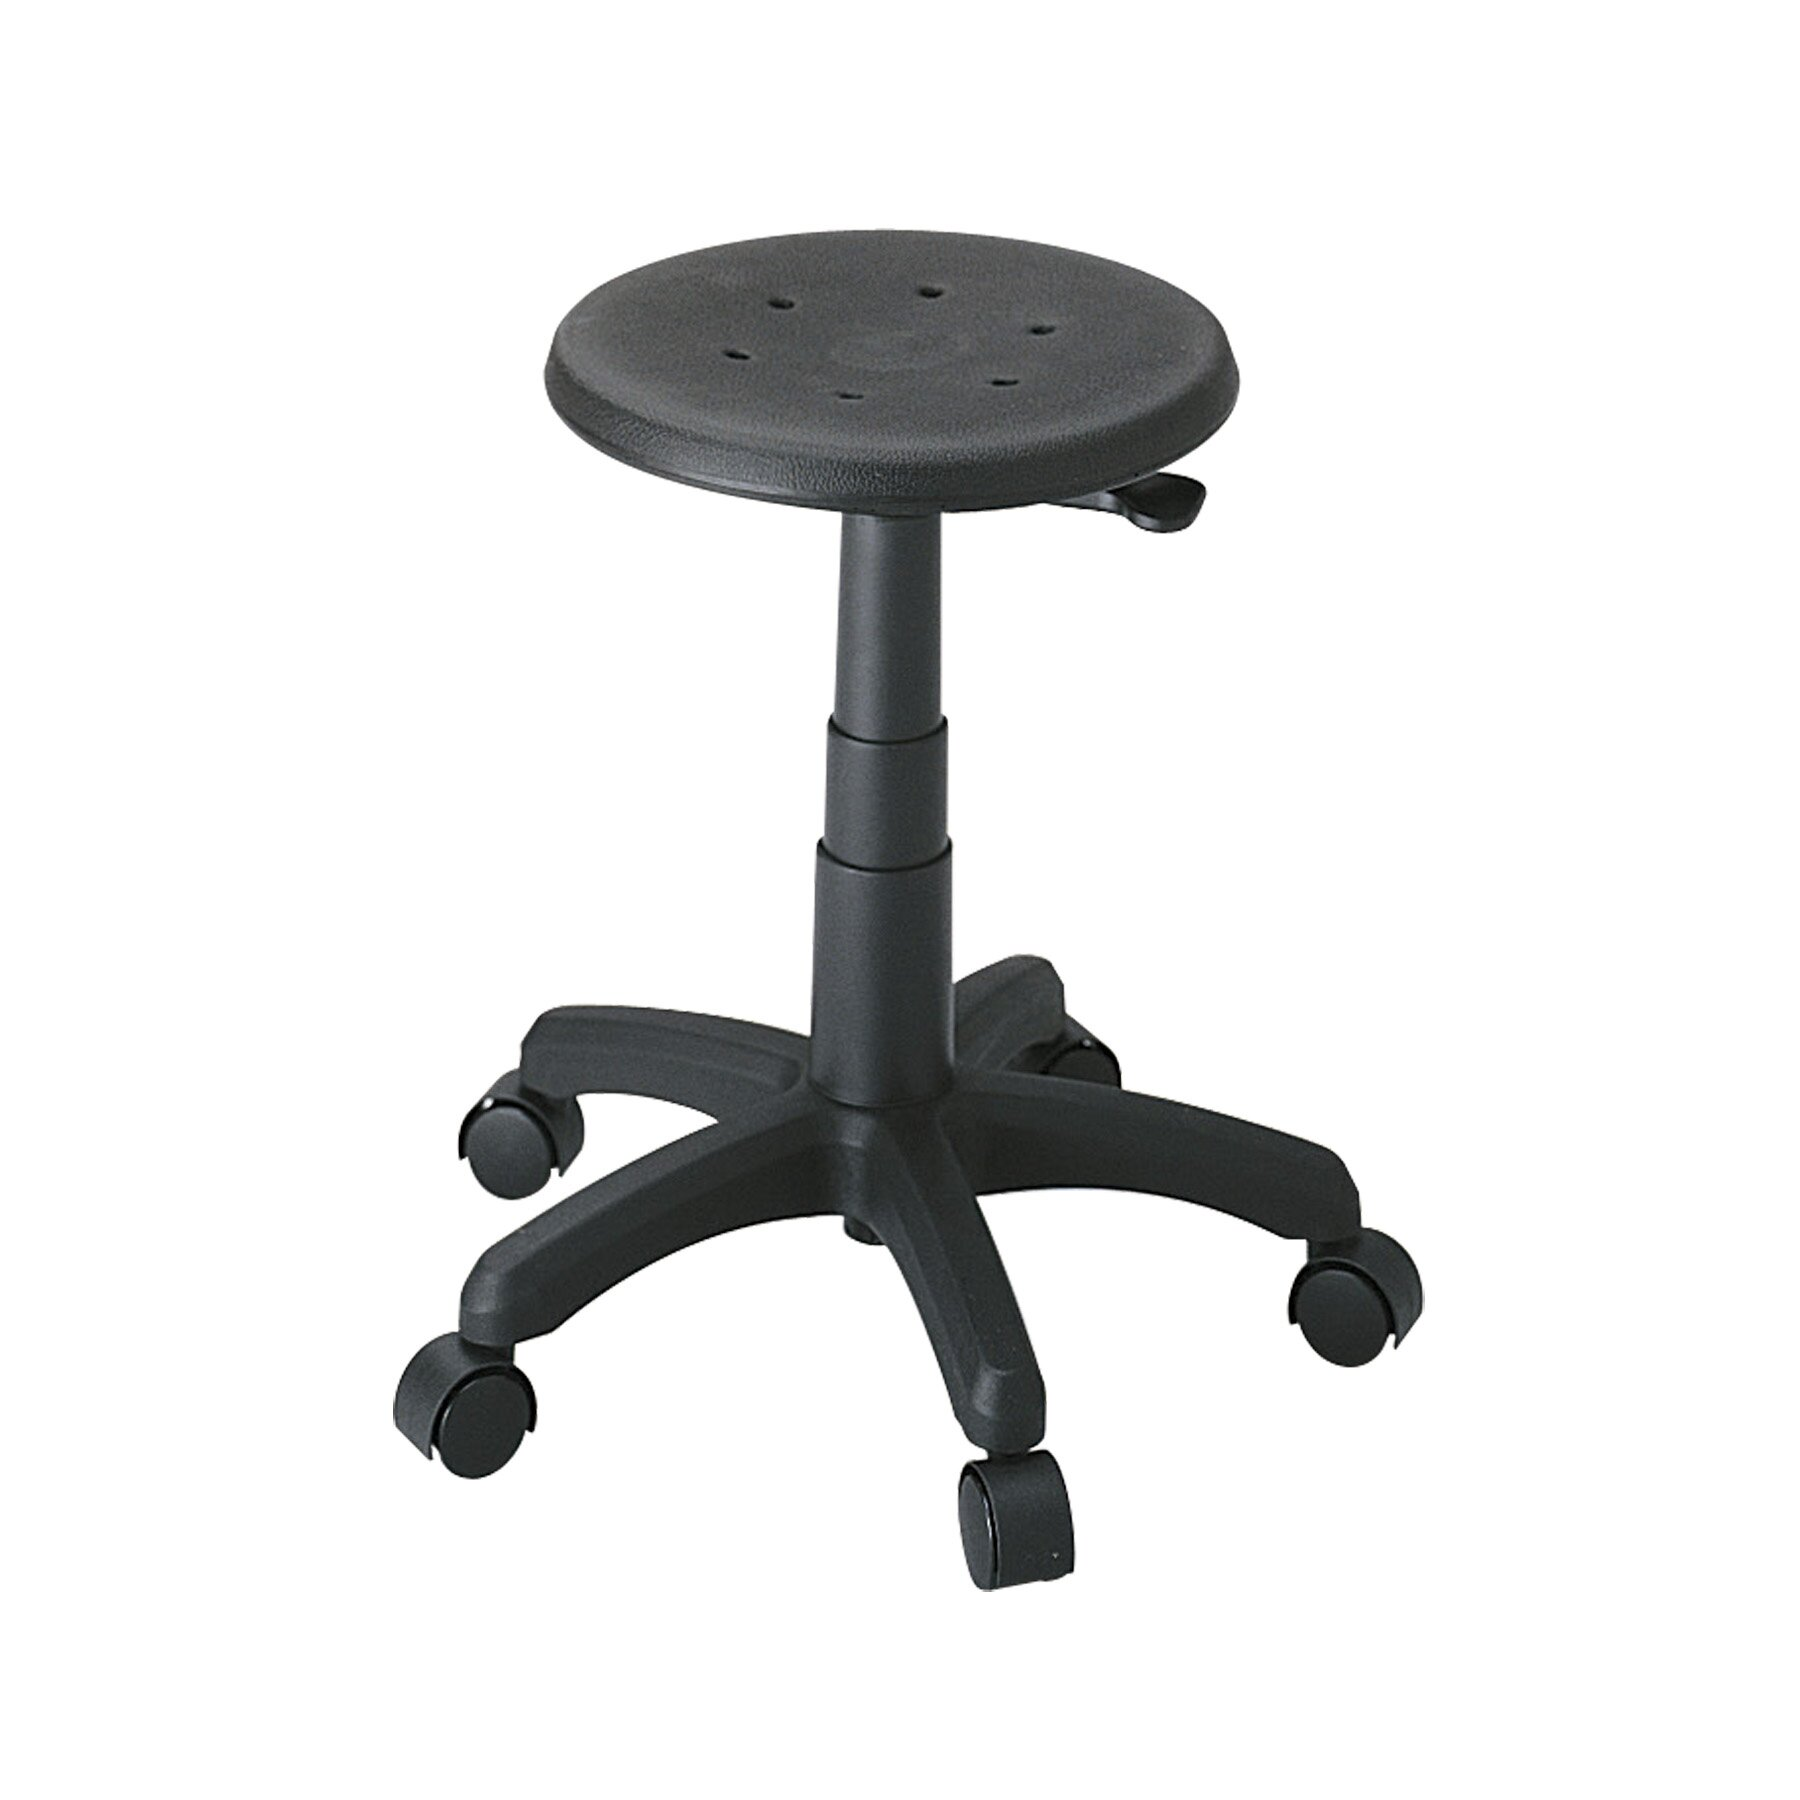 safco products height adjustable office stool with casters reviews wayfair. Black Bedroom Furniture Sets. Home Design Ideas